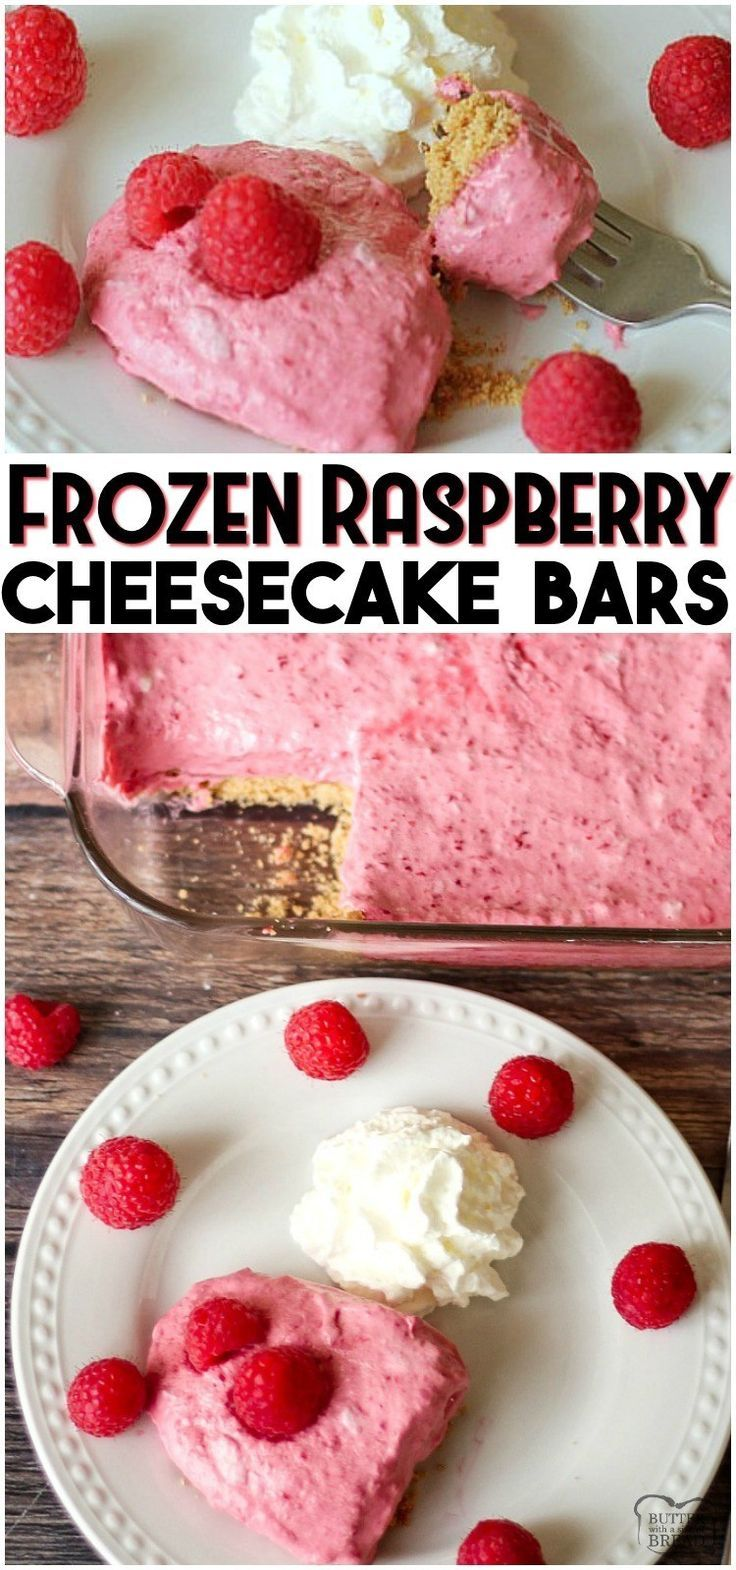 Frozen Raspberry Cheesecake Bars are a simple dessert made by combining cheeseca - Raspberries - Ideas of Raspberries #Raspberries -  Frozen Raspberry Cheesecake Bars are a simple dessert made by combining cheesecake & raspberries. Sweet creamy and delicious no-bake raspberry cheesecake recipe can be made ahead and comes together quick. #cheesecake #frozen #raspberry #simplecheesecakerecipe